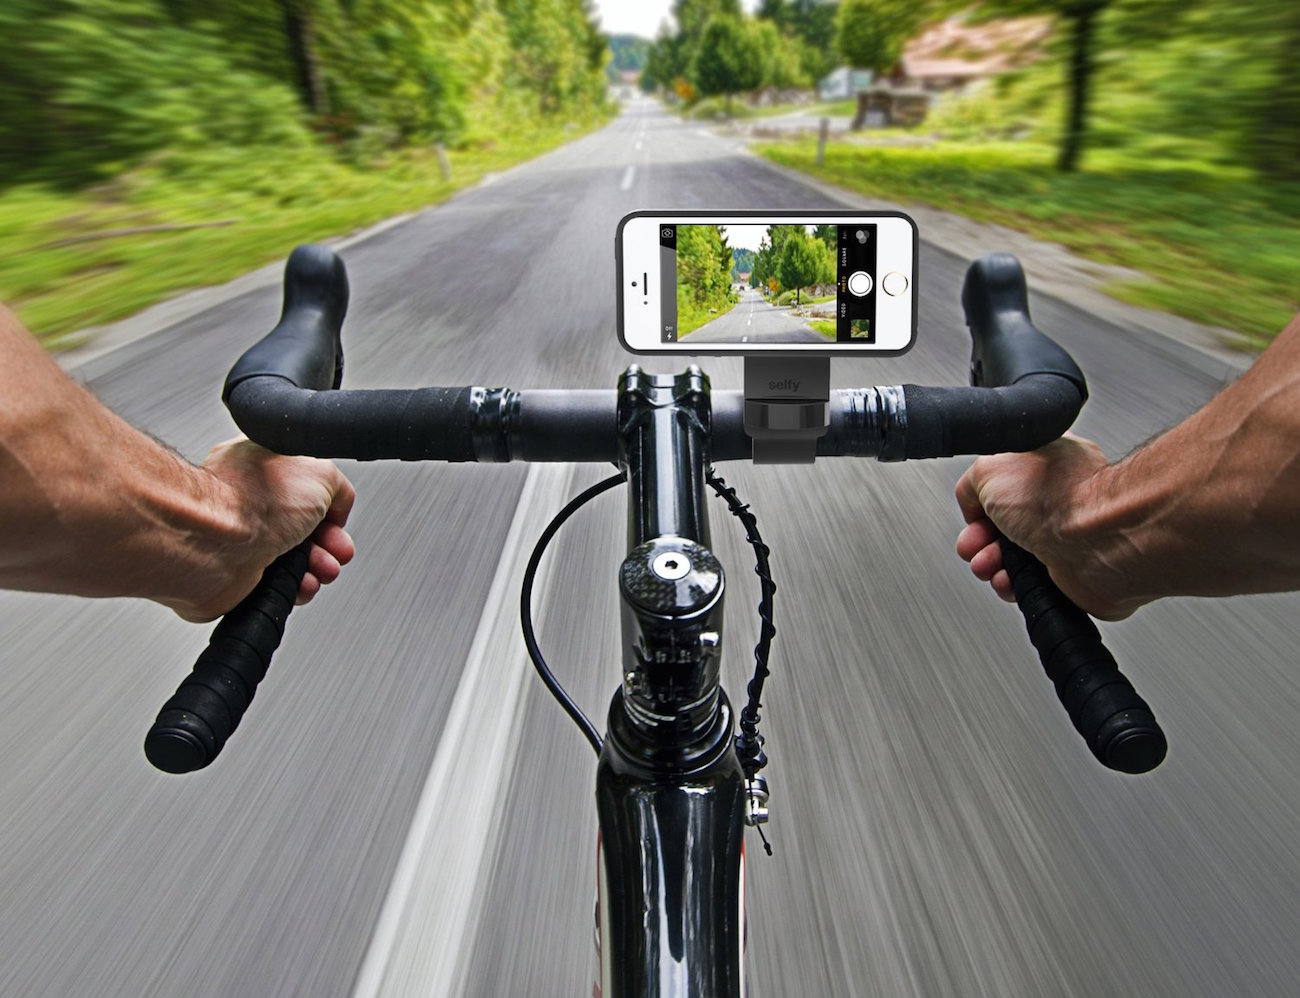 Selfy Bar Mount by iLuv – Capture Your Special Bicycle Moments in Style